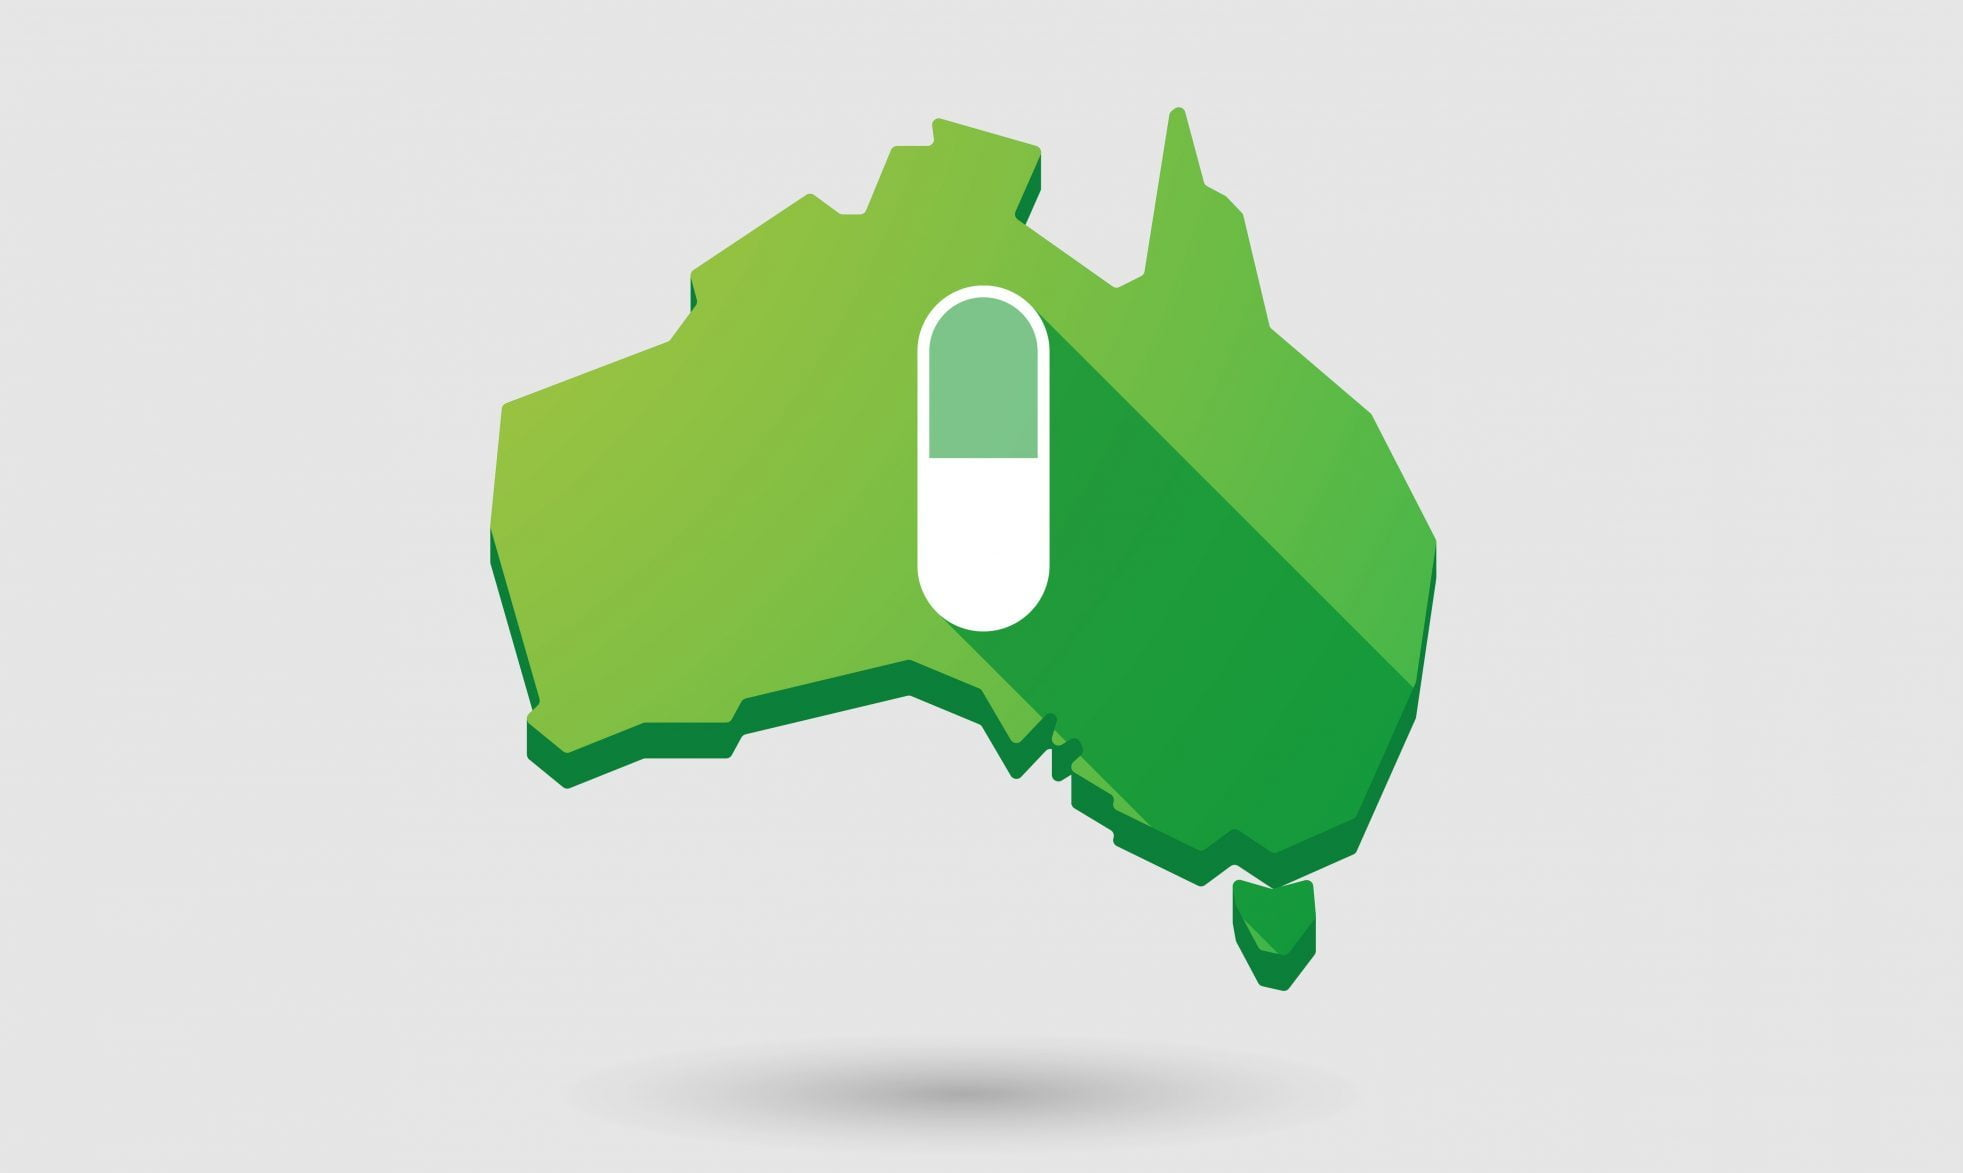 australia pills codeine drugs opioids prescription medicines medication population